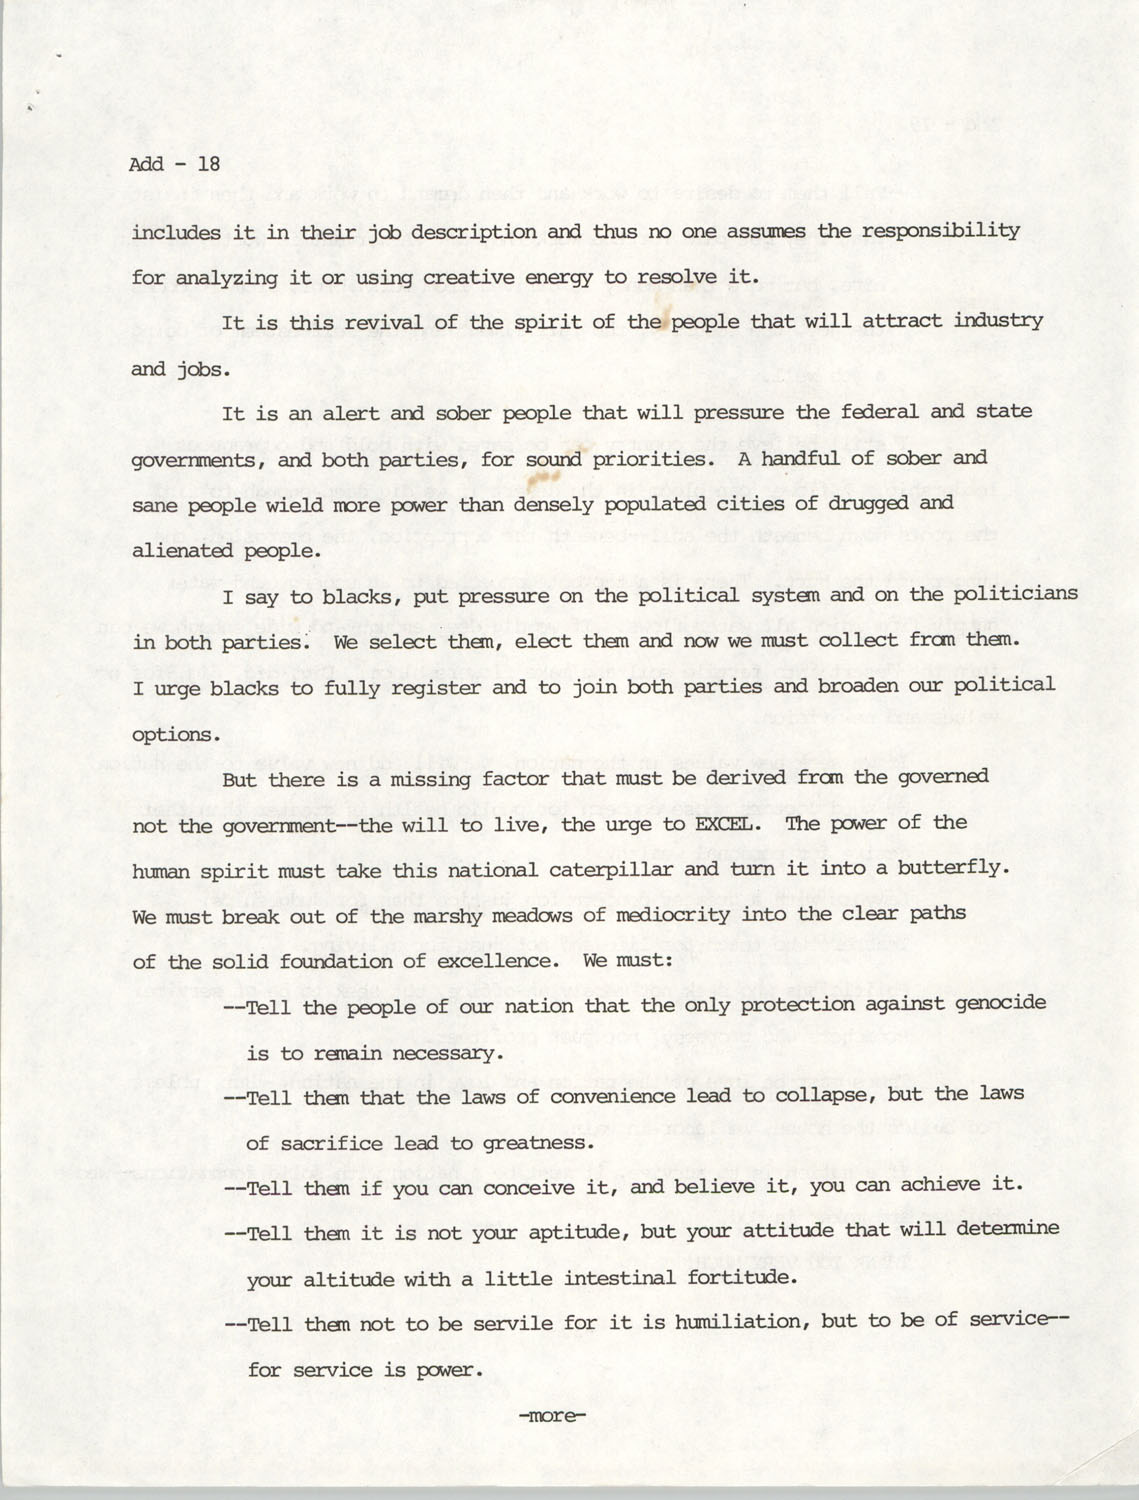 Speech Before the Republican National Committee, Page 18